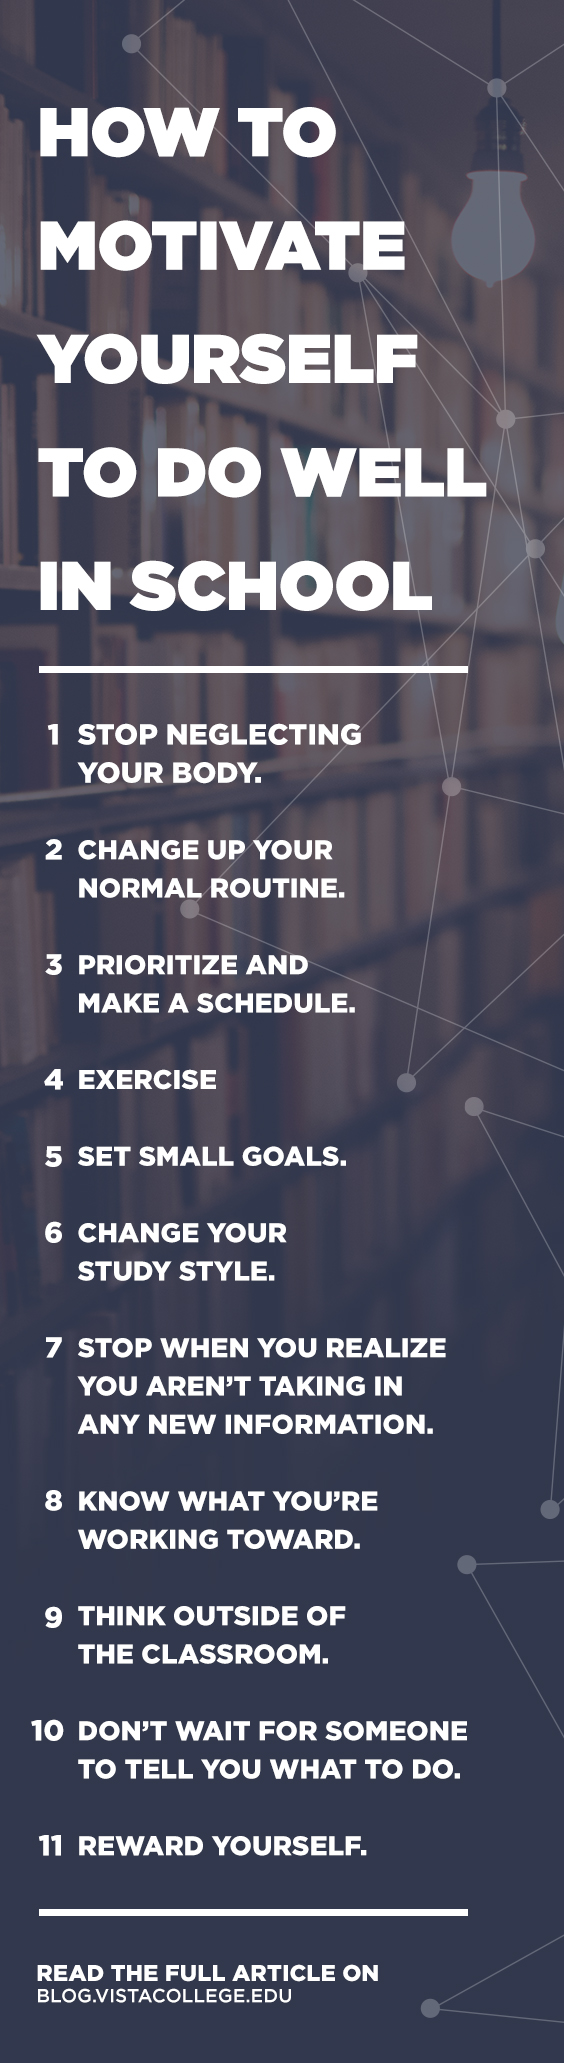 How to Motivate Yourself to Do Well in School